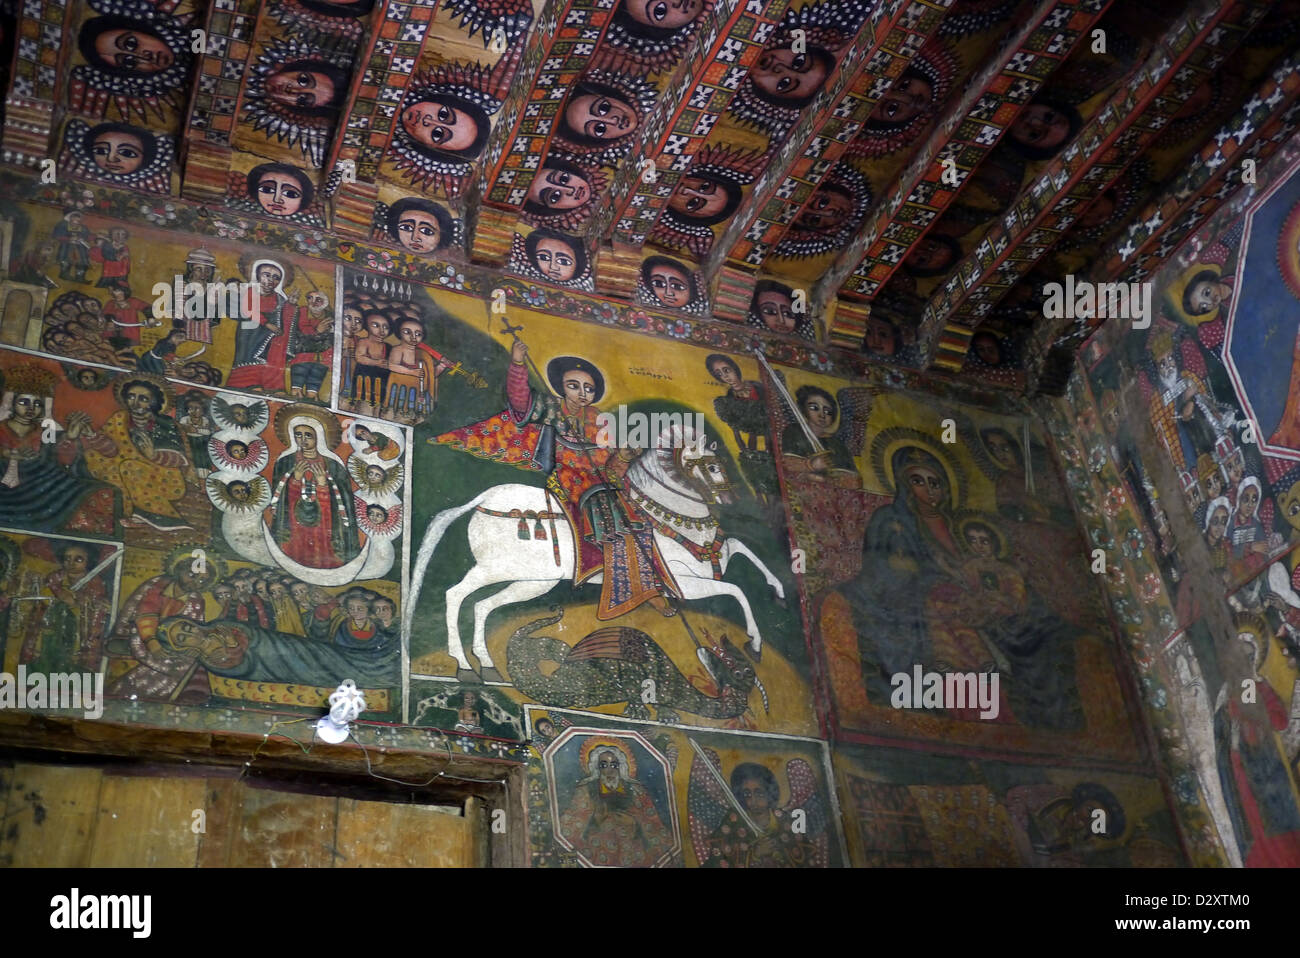 ethiopian religious art stock photos ethiopian religious art ethiopia religious murals attributed 17th century artist haile meskel depicting st george killing dragon